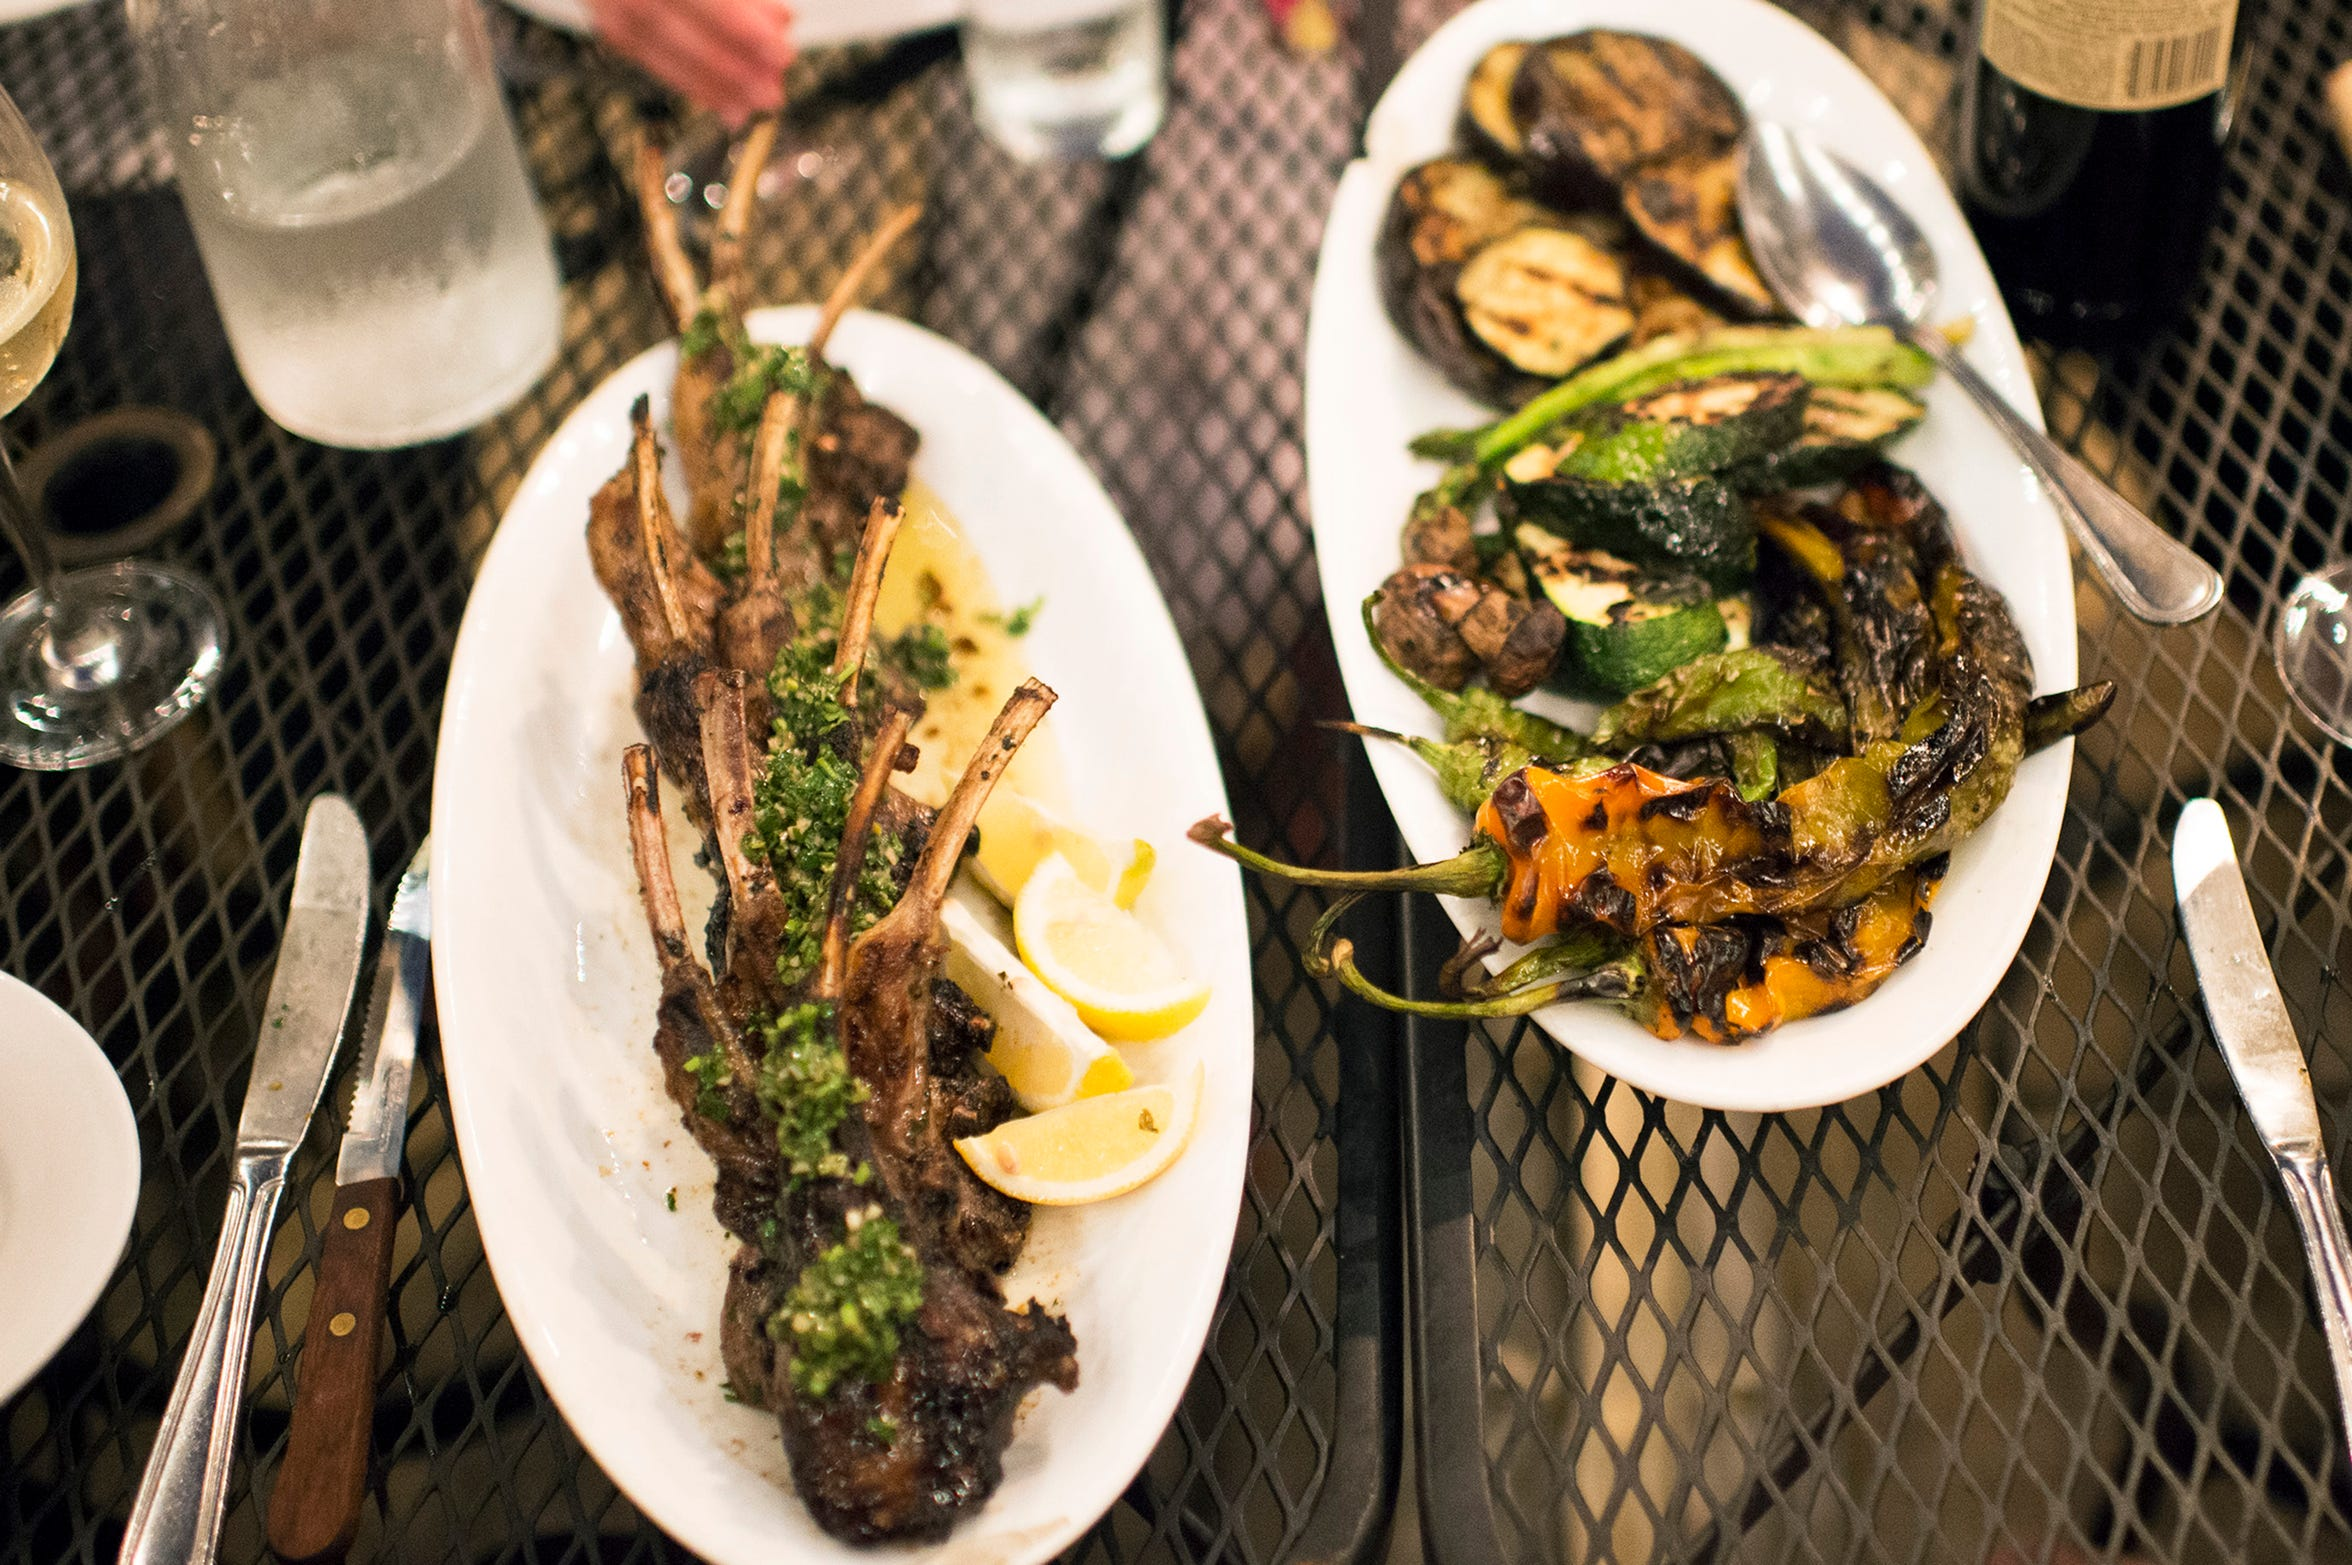 Grilled lamb chops are placed beside a plate of grilled vegetables for a special Sicilian style barbecue at Zeppoli in Collingswood.